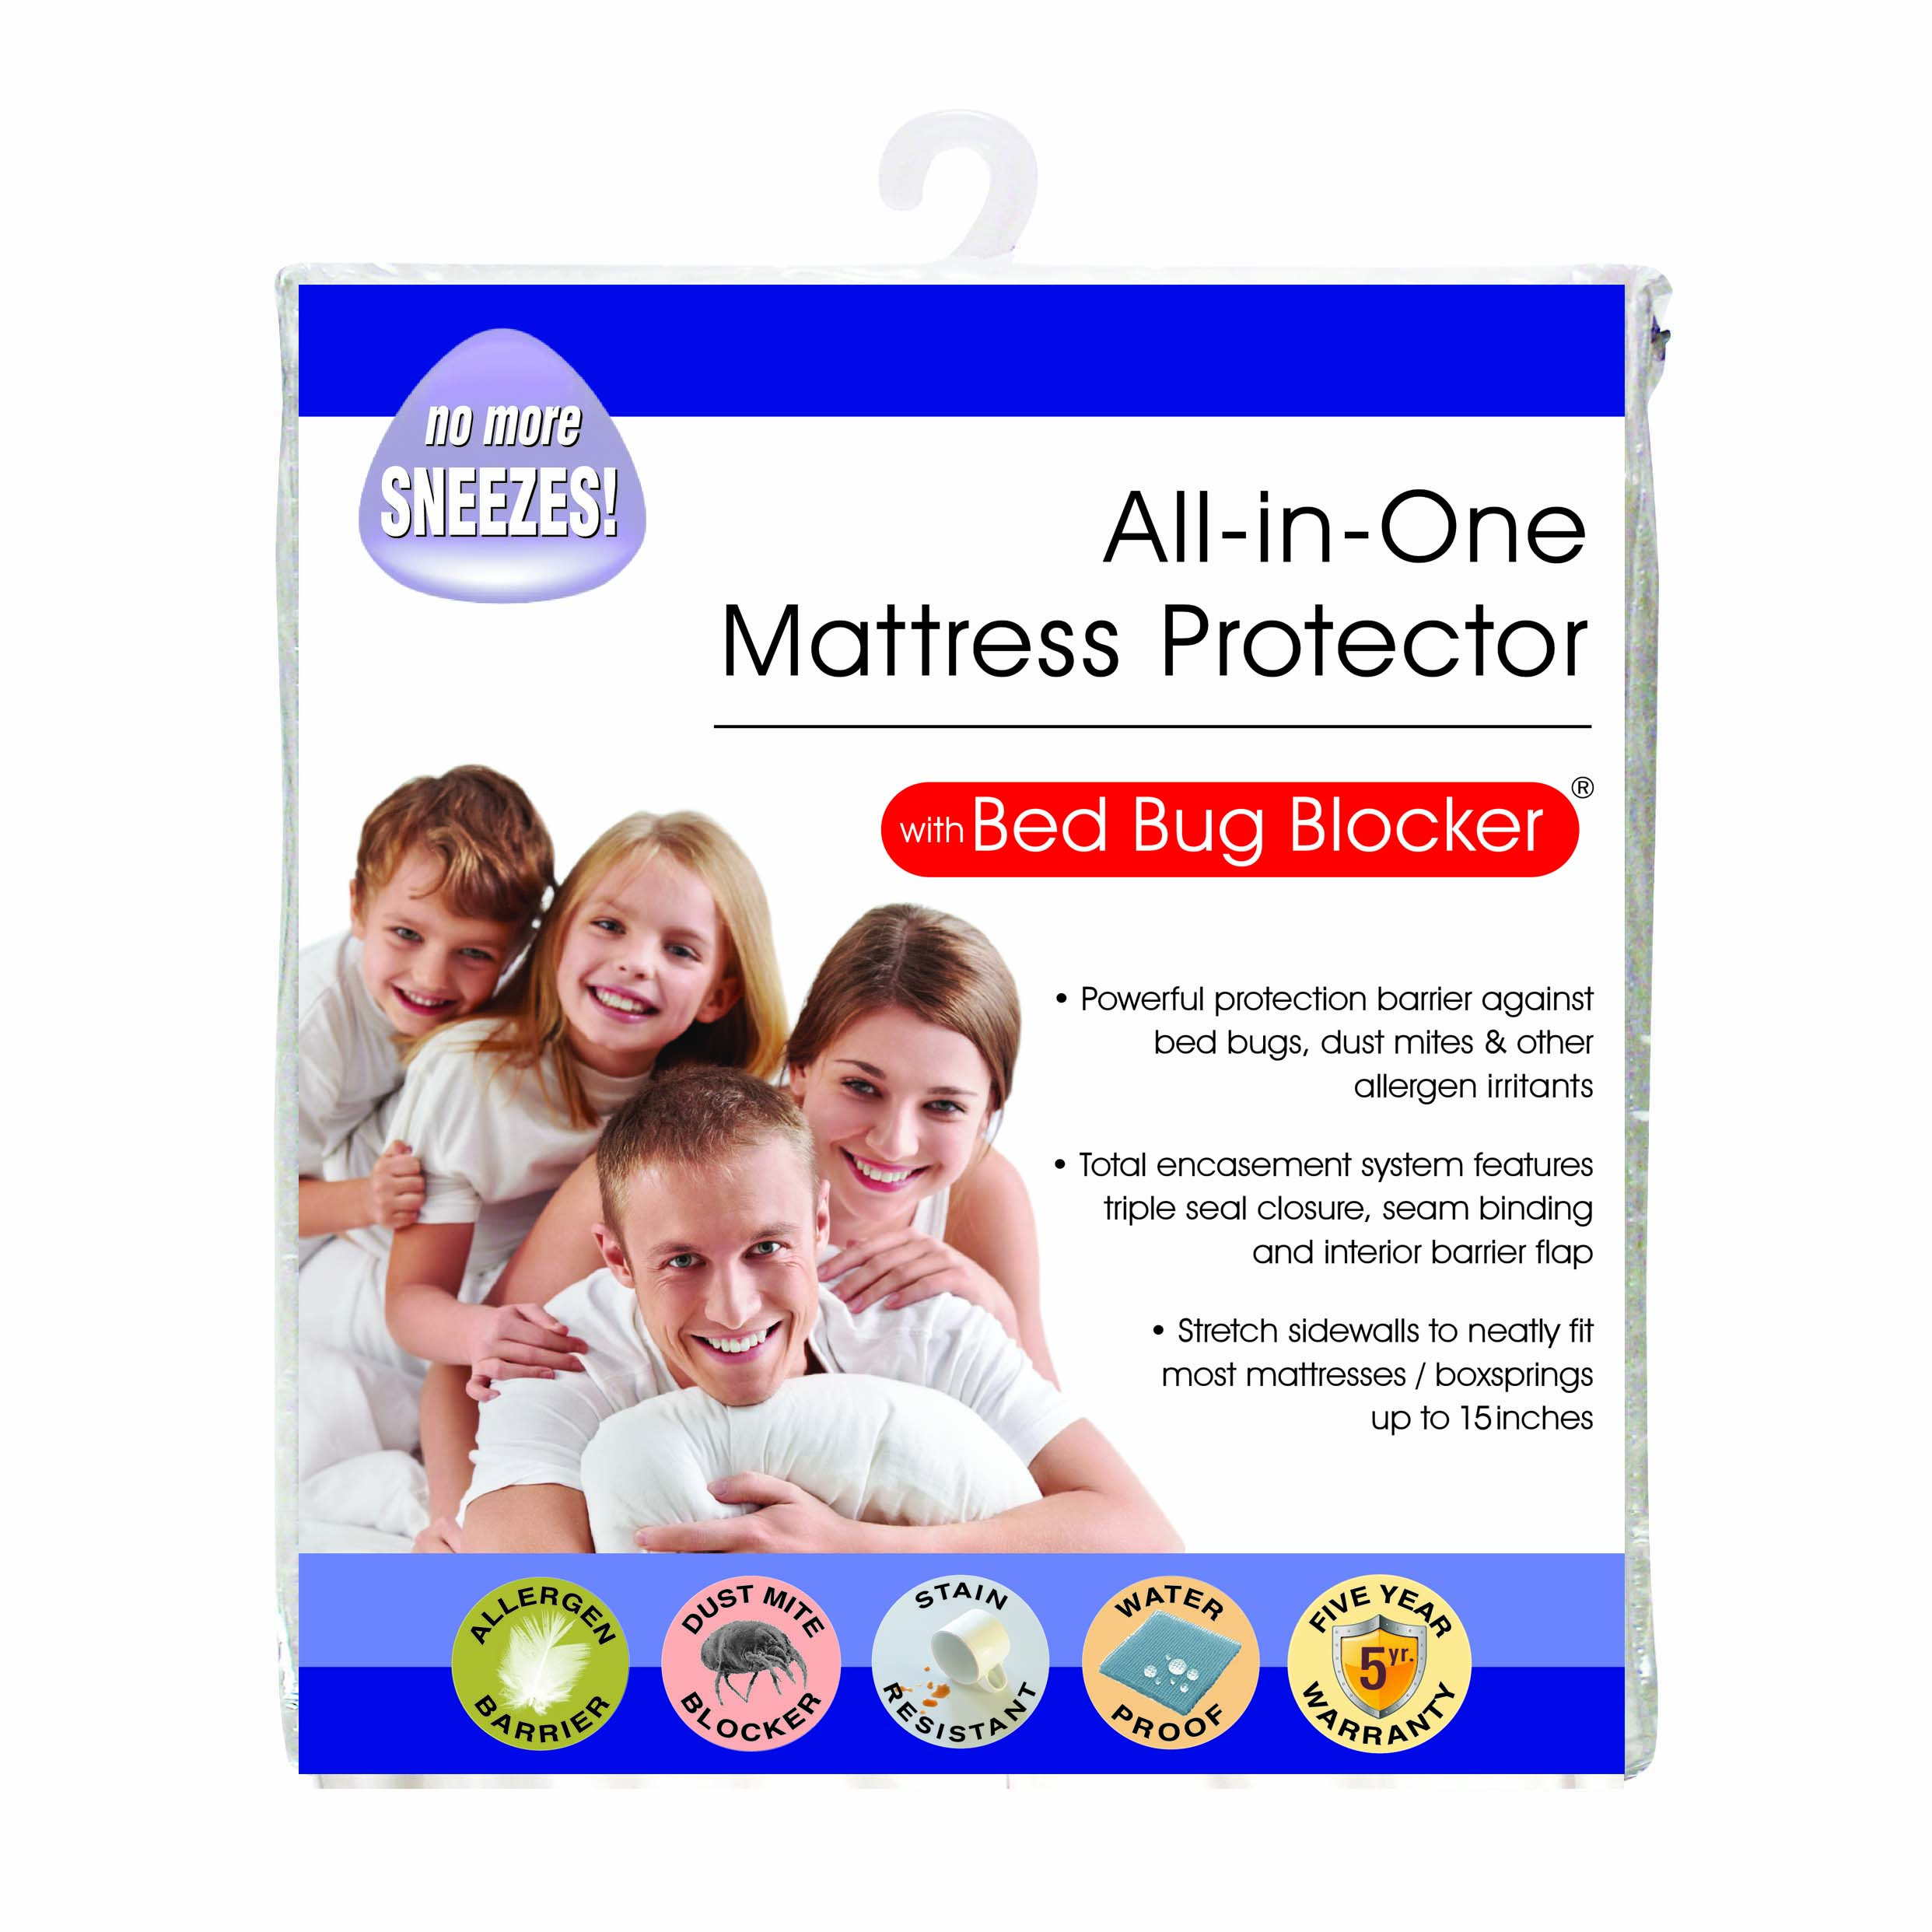 Bed Bug Protection Cover Original Bed Bug Blocker Zippered Mattress Cover Protector